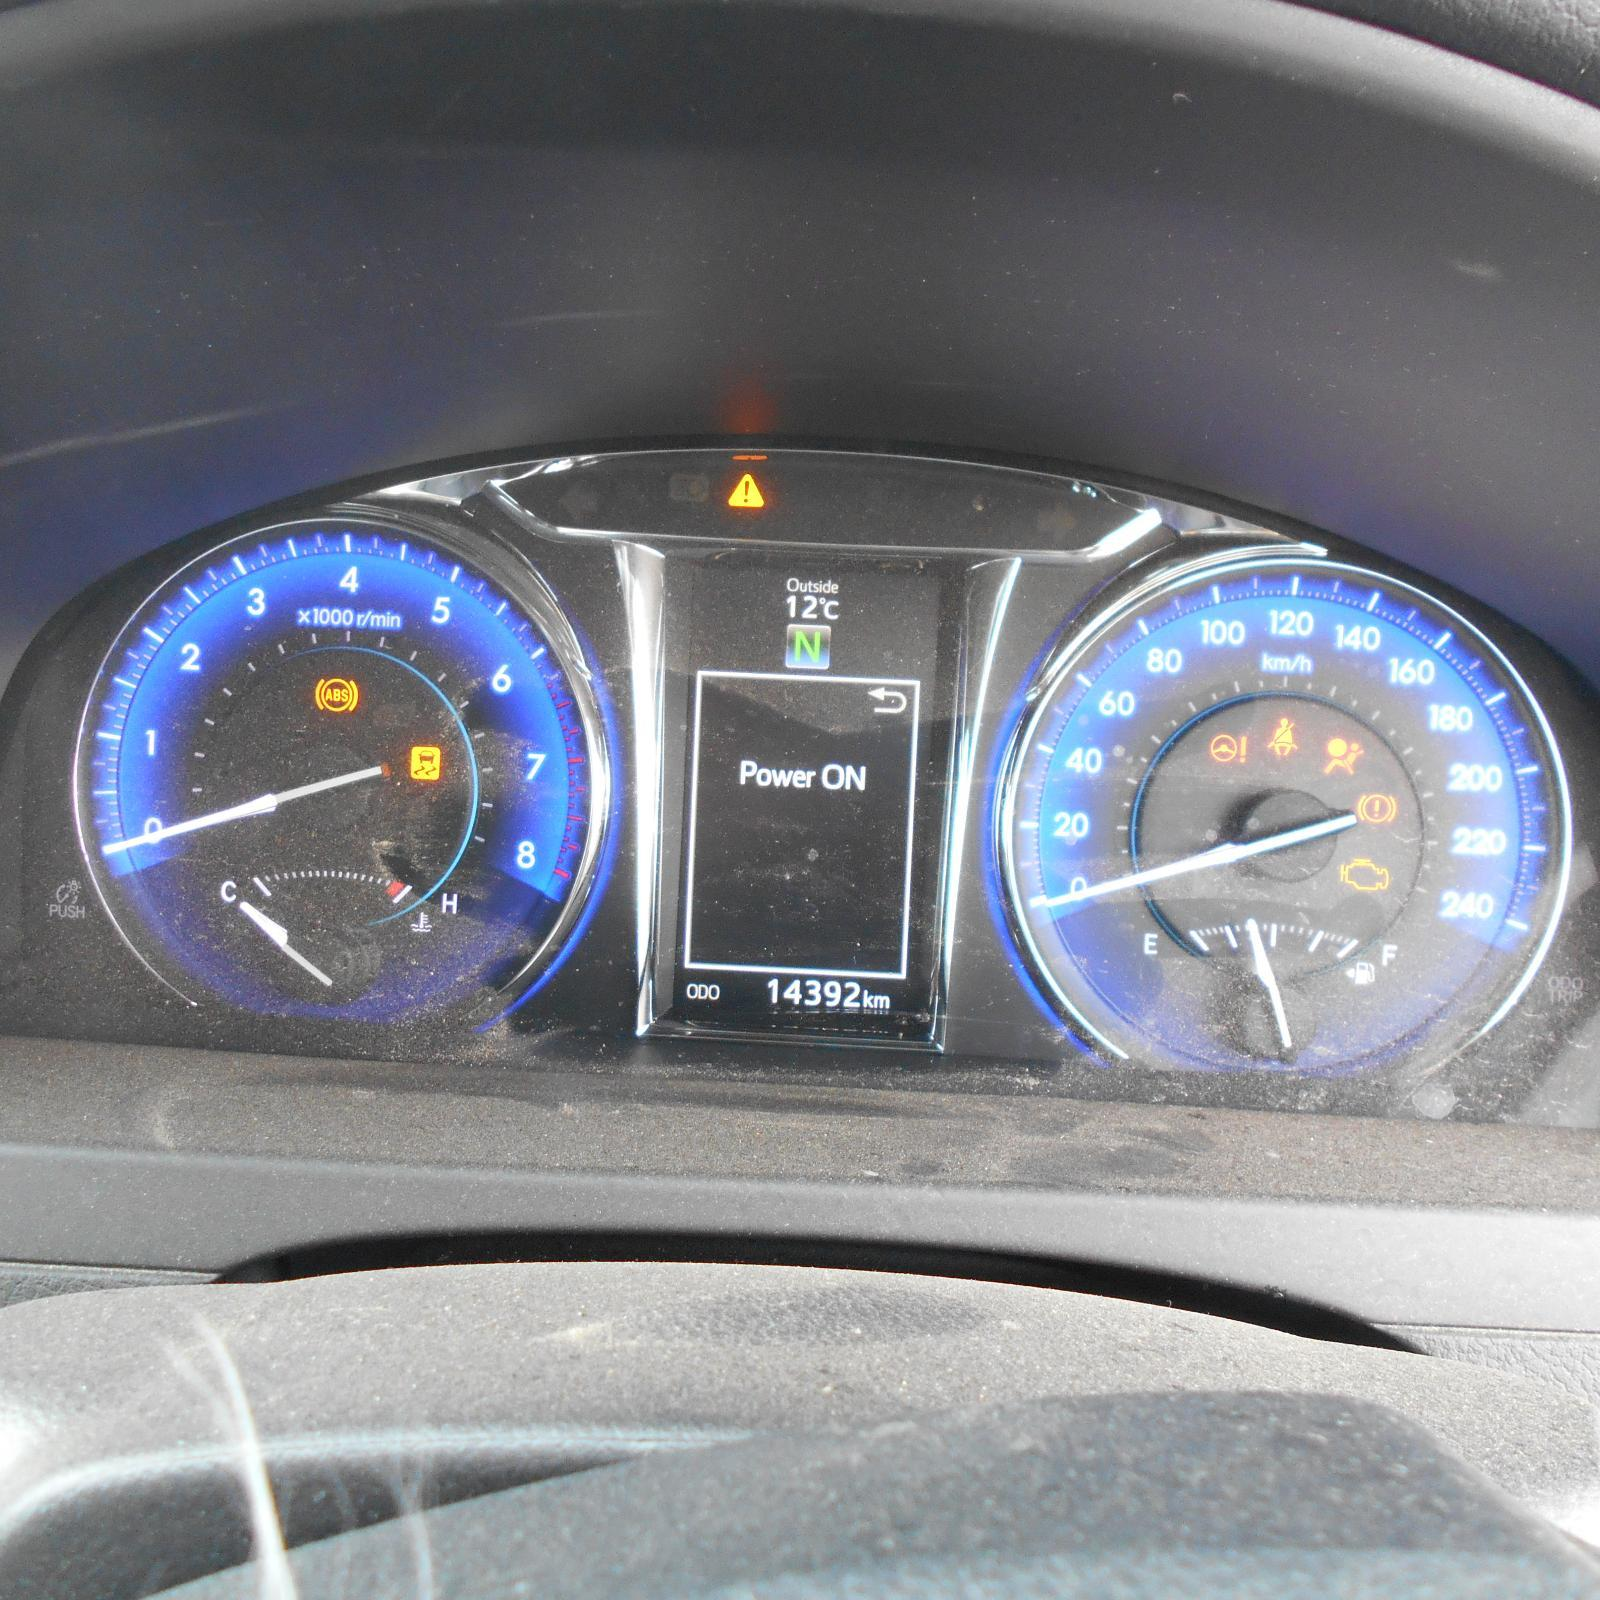 TOYOTA CAMRY, Instrument Cluster, INSTRUMENT CLUSTER, 2.5, 2AR-FE, ATARA SL, ACV50, 05/15-10/17